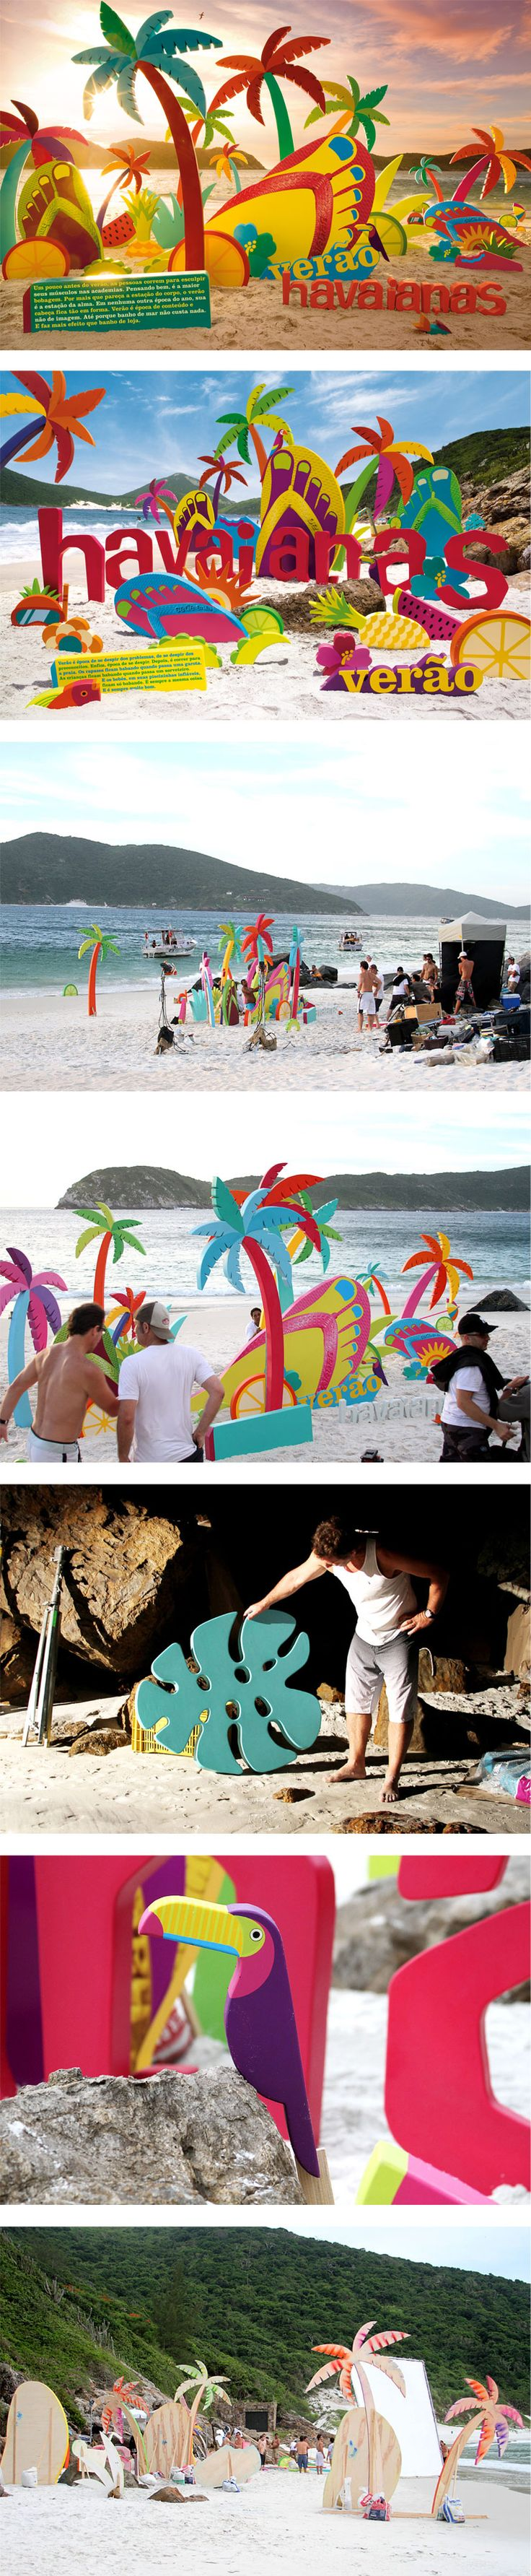 Havaianas - Guerilla marketing - Massive marketing campaign.